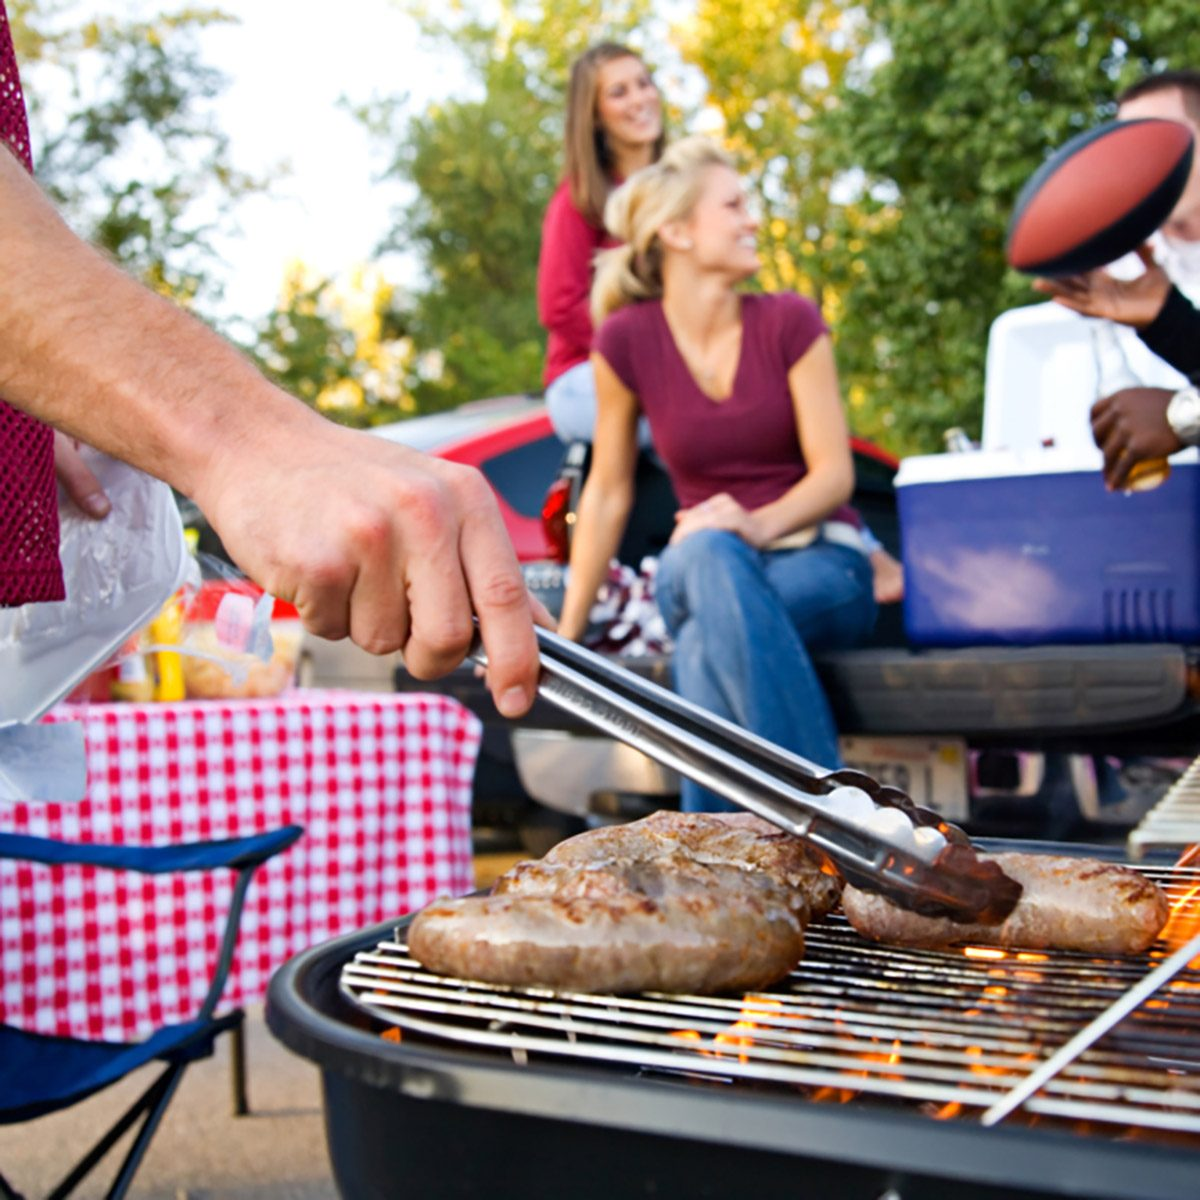 Tailgating: Bratwurst Cooking On Grill For Tailgate Party